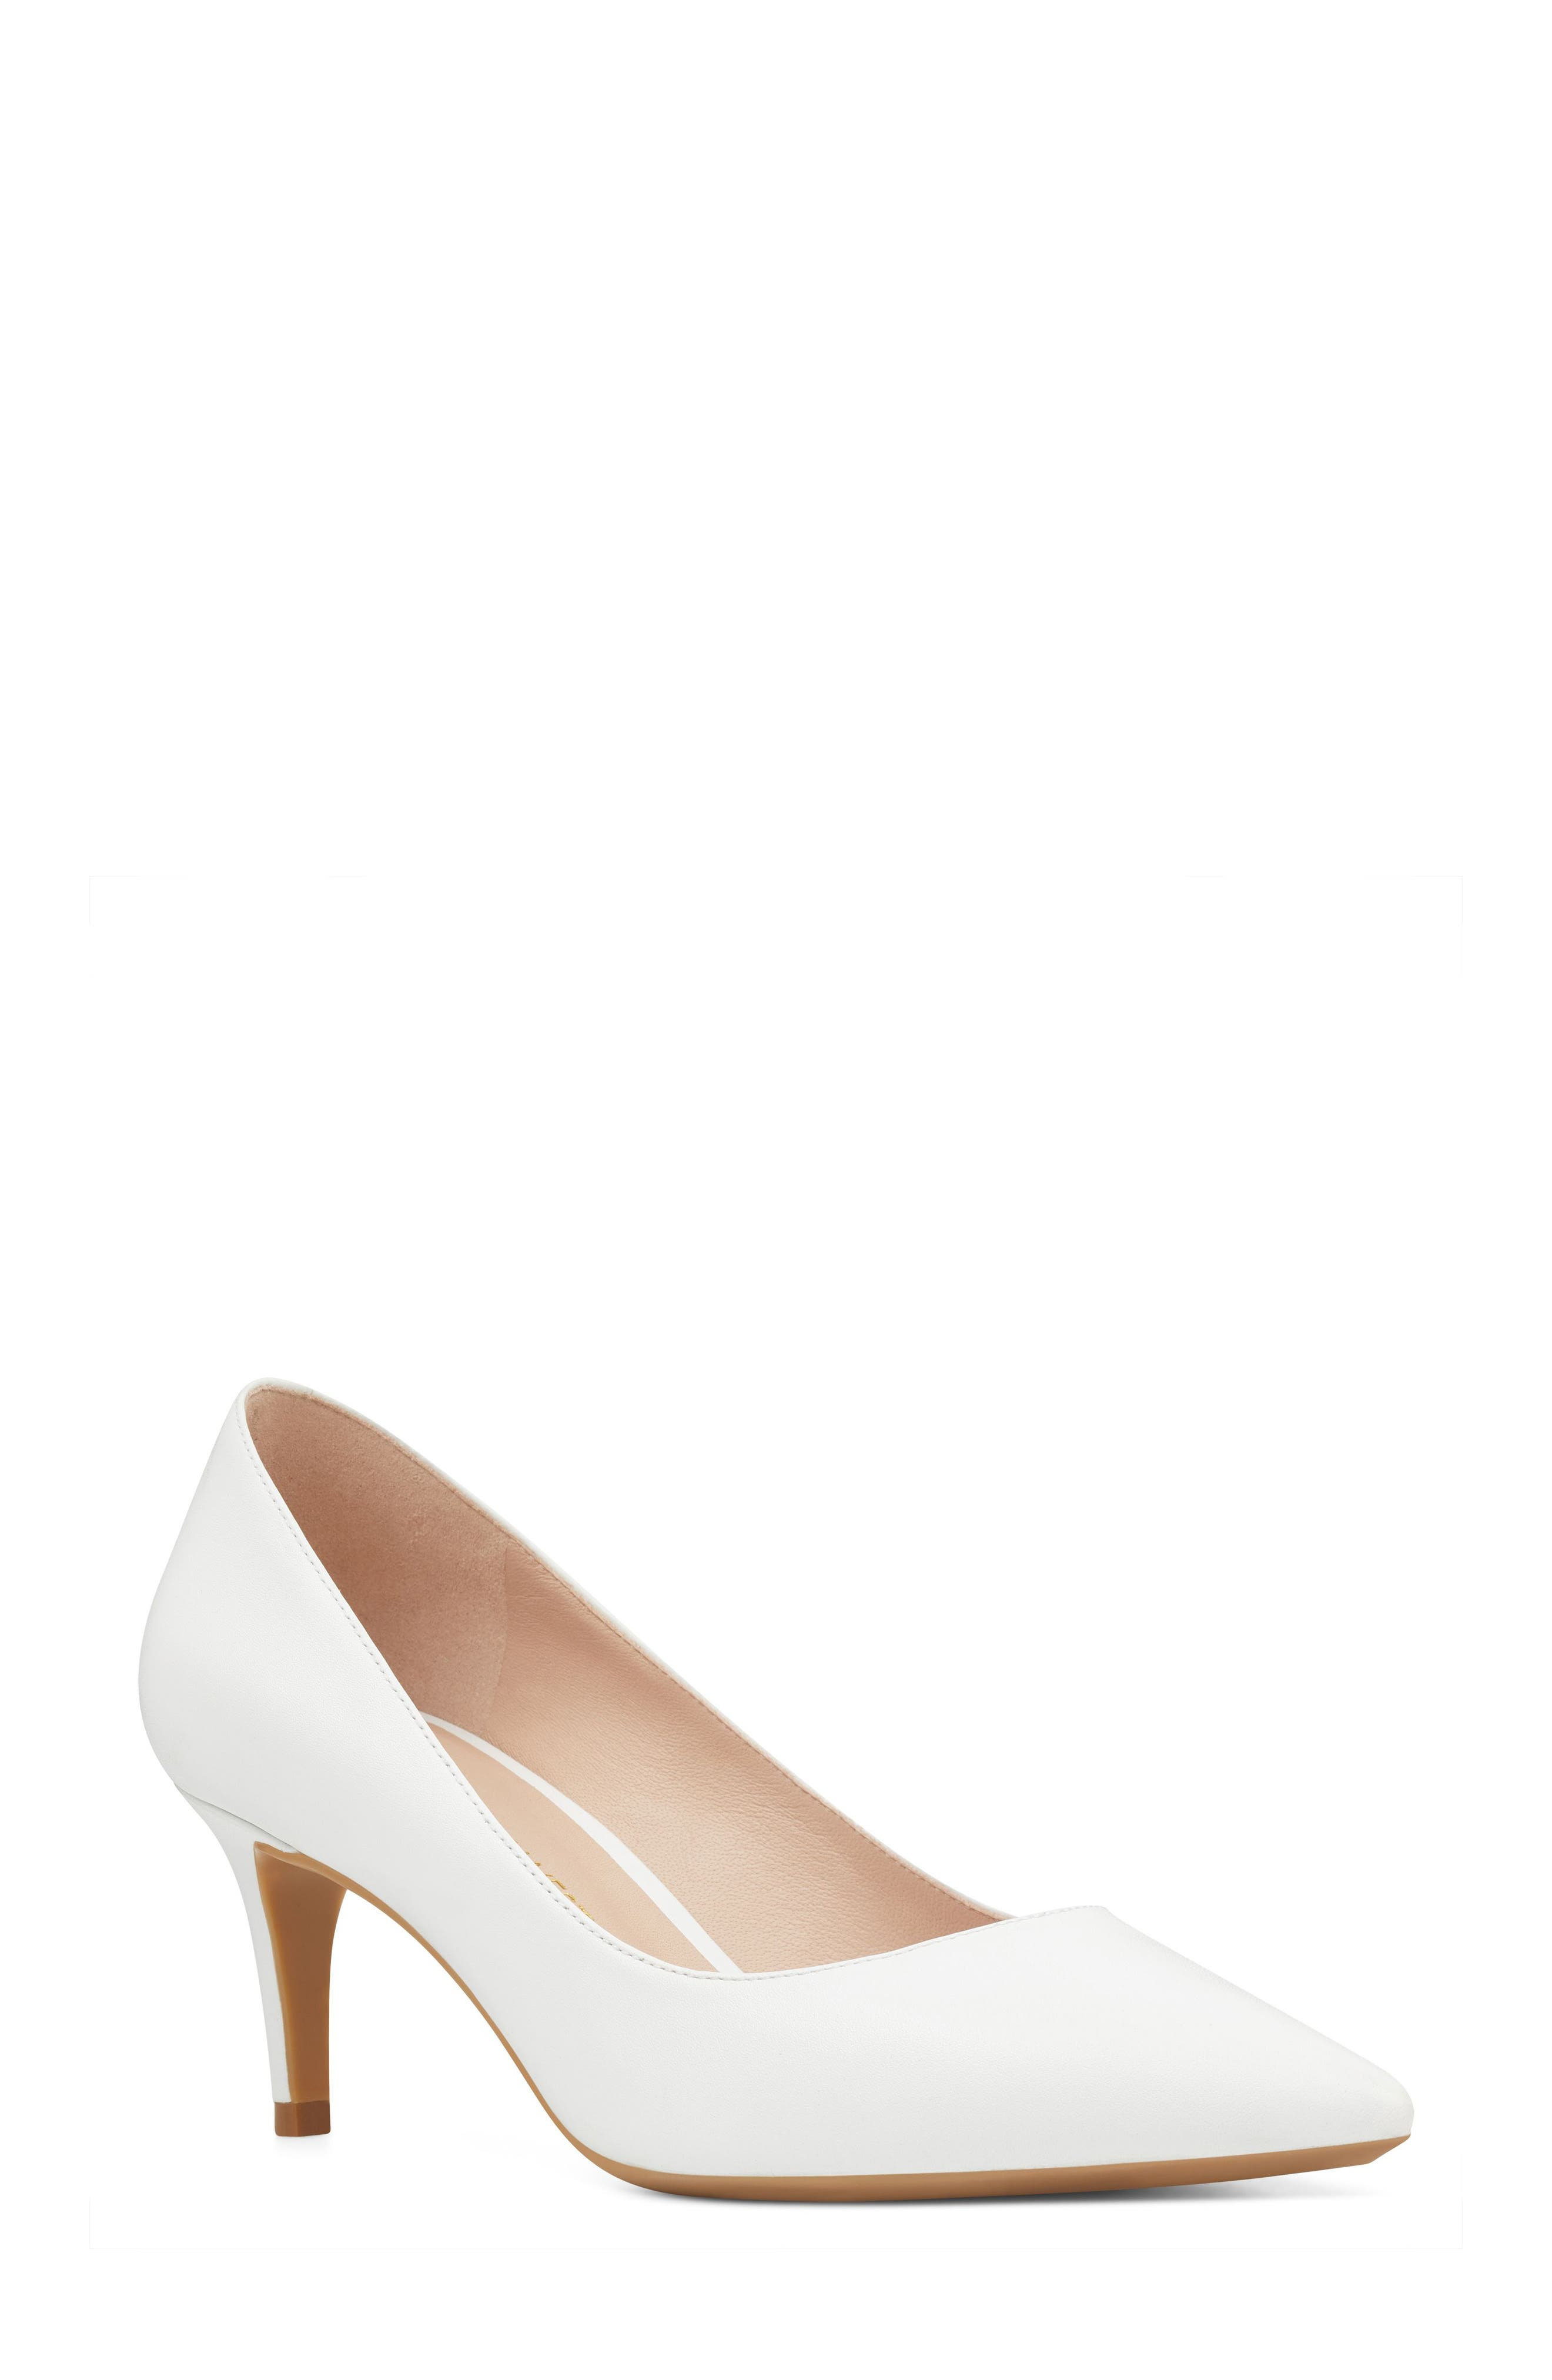 Soho Pointy Toe Pump,                         Main,                         color, 100